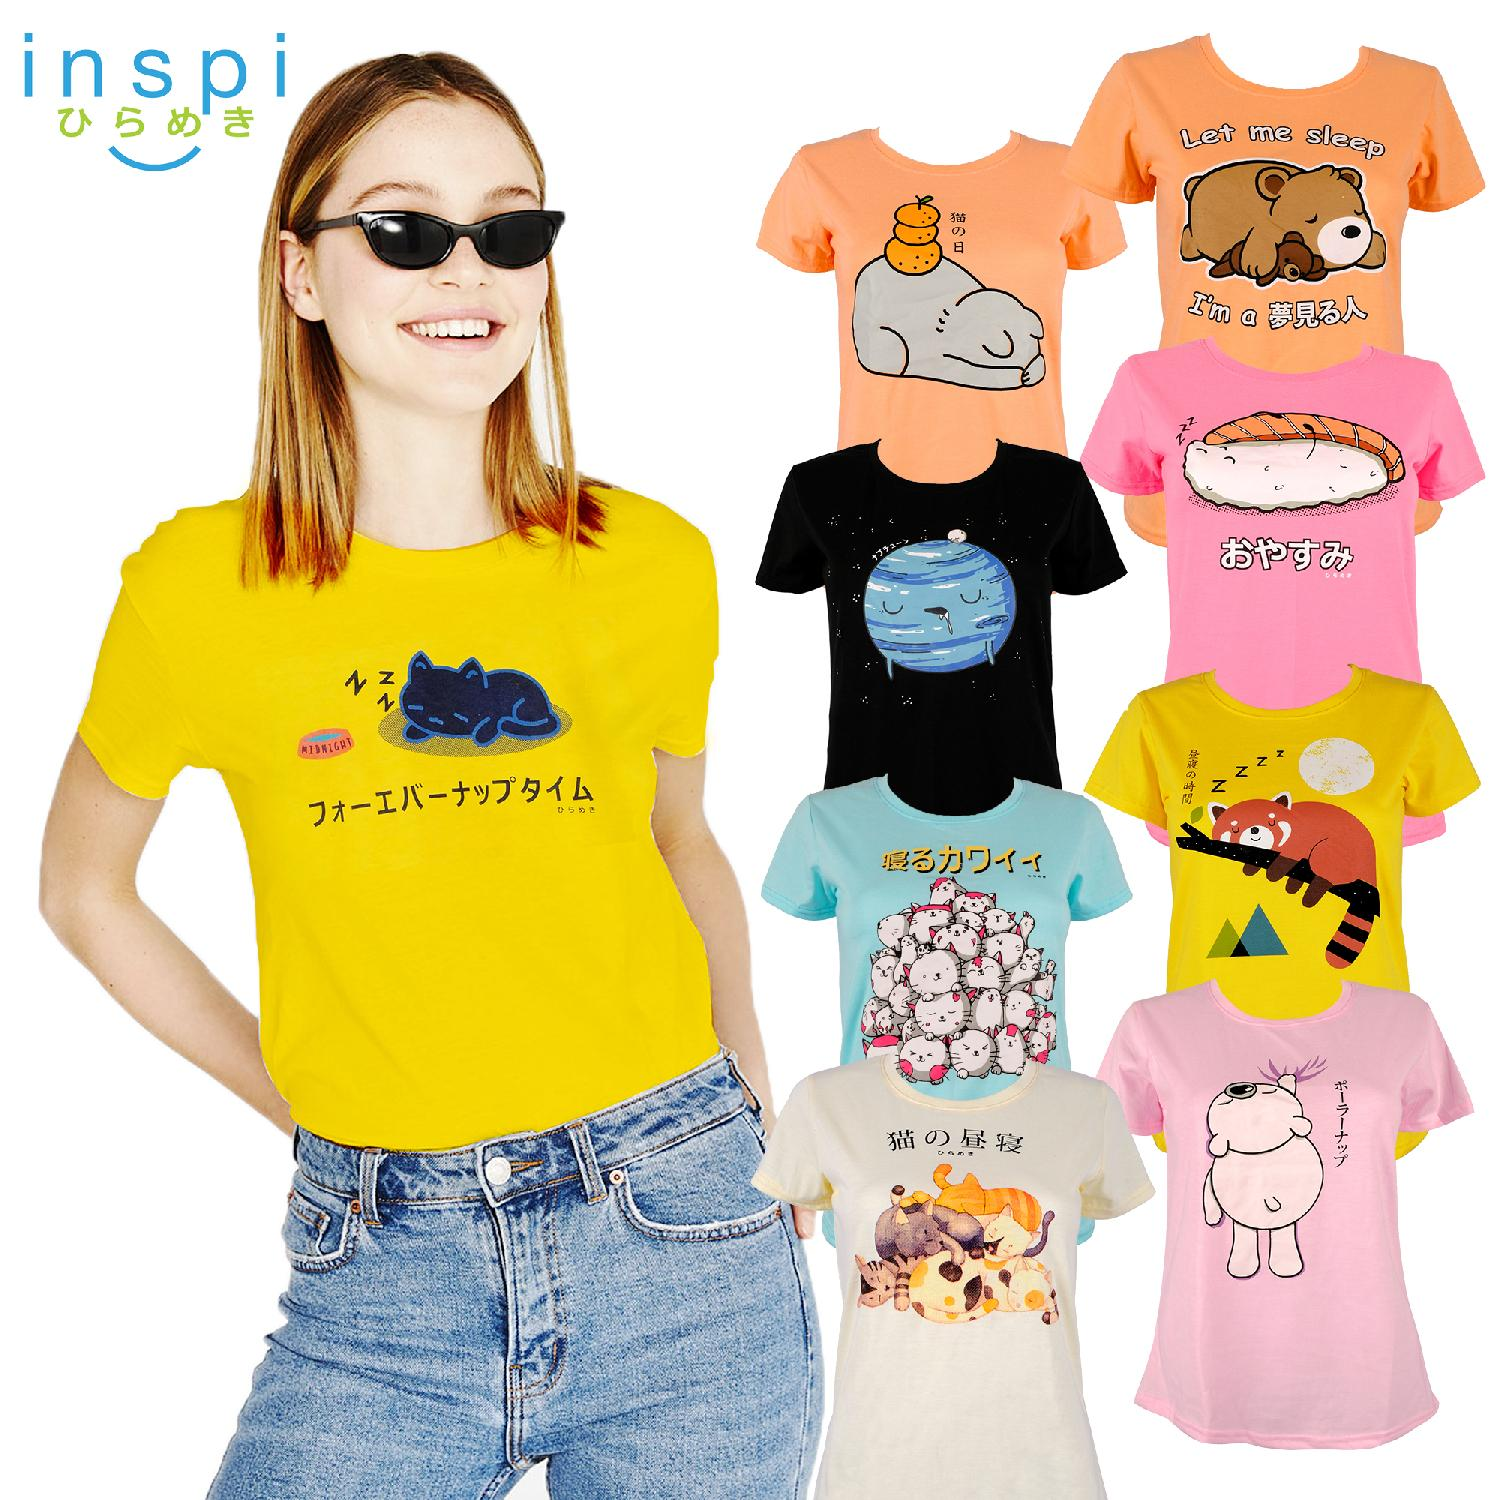 1e80bbce34d INSPI Tees Ladies Nap Collection tshirt printed graphic tee Ladies t shirt  shirts women tshirts for